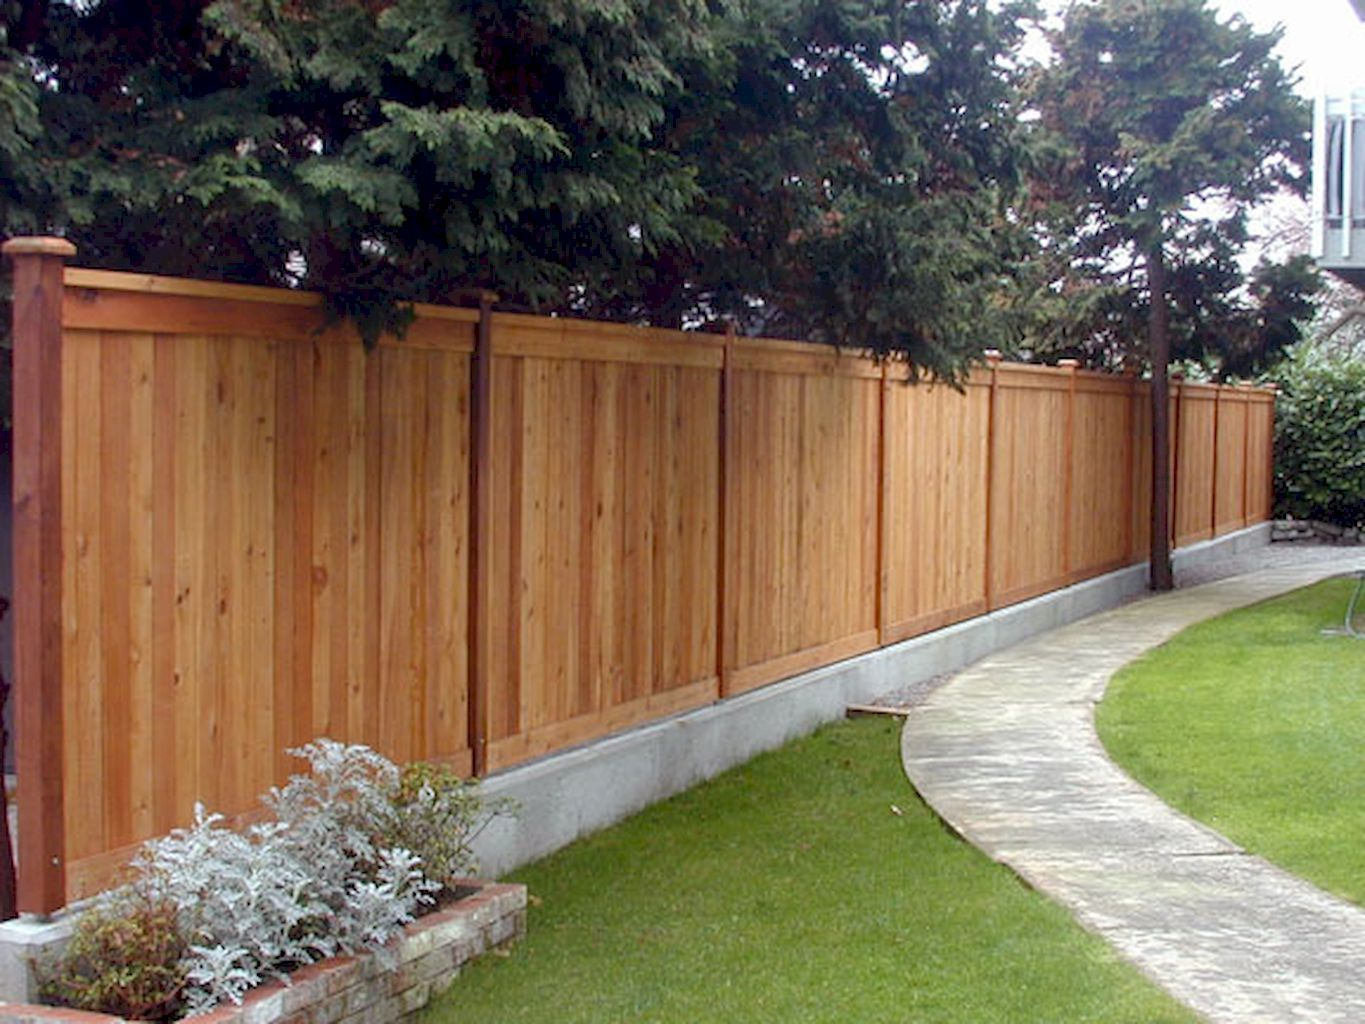 70 Wooden Privacy Fence Backyard Design Landscaping Ideas Avista within 16 Some of the Coolest Initiatives of How to Craft Wood Fence Backyard